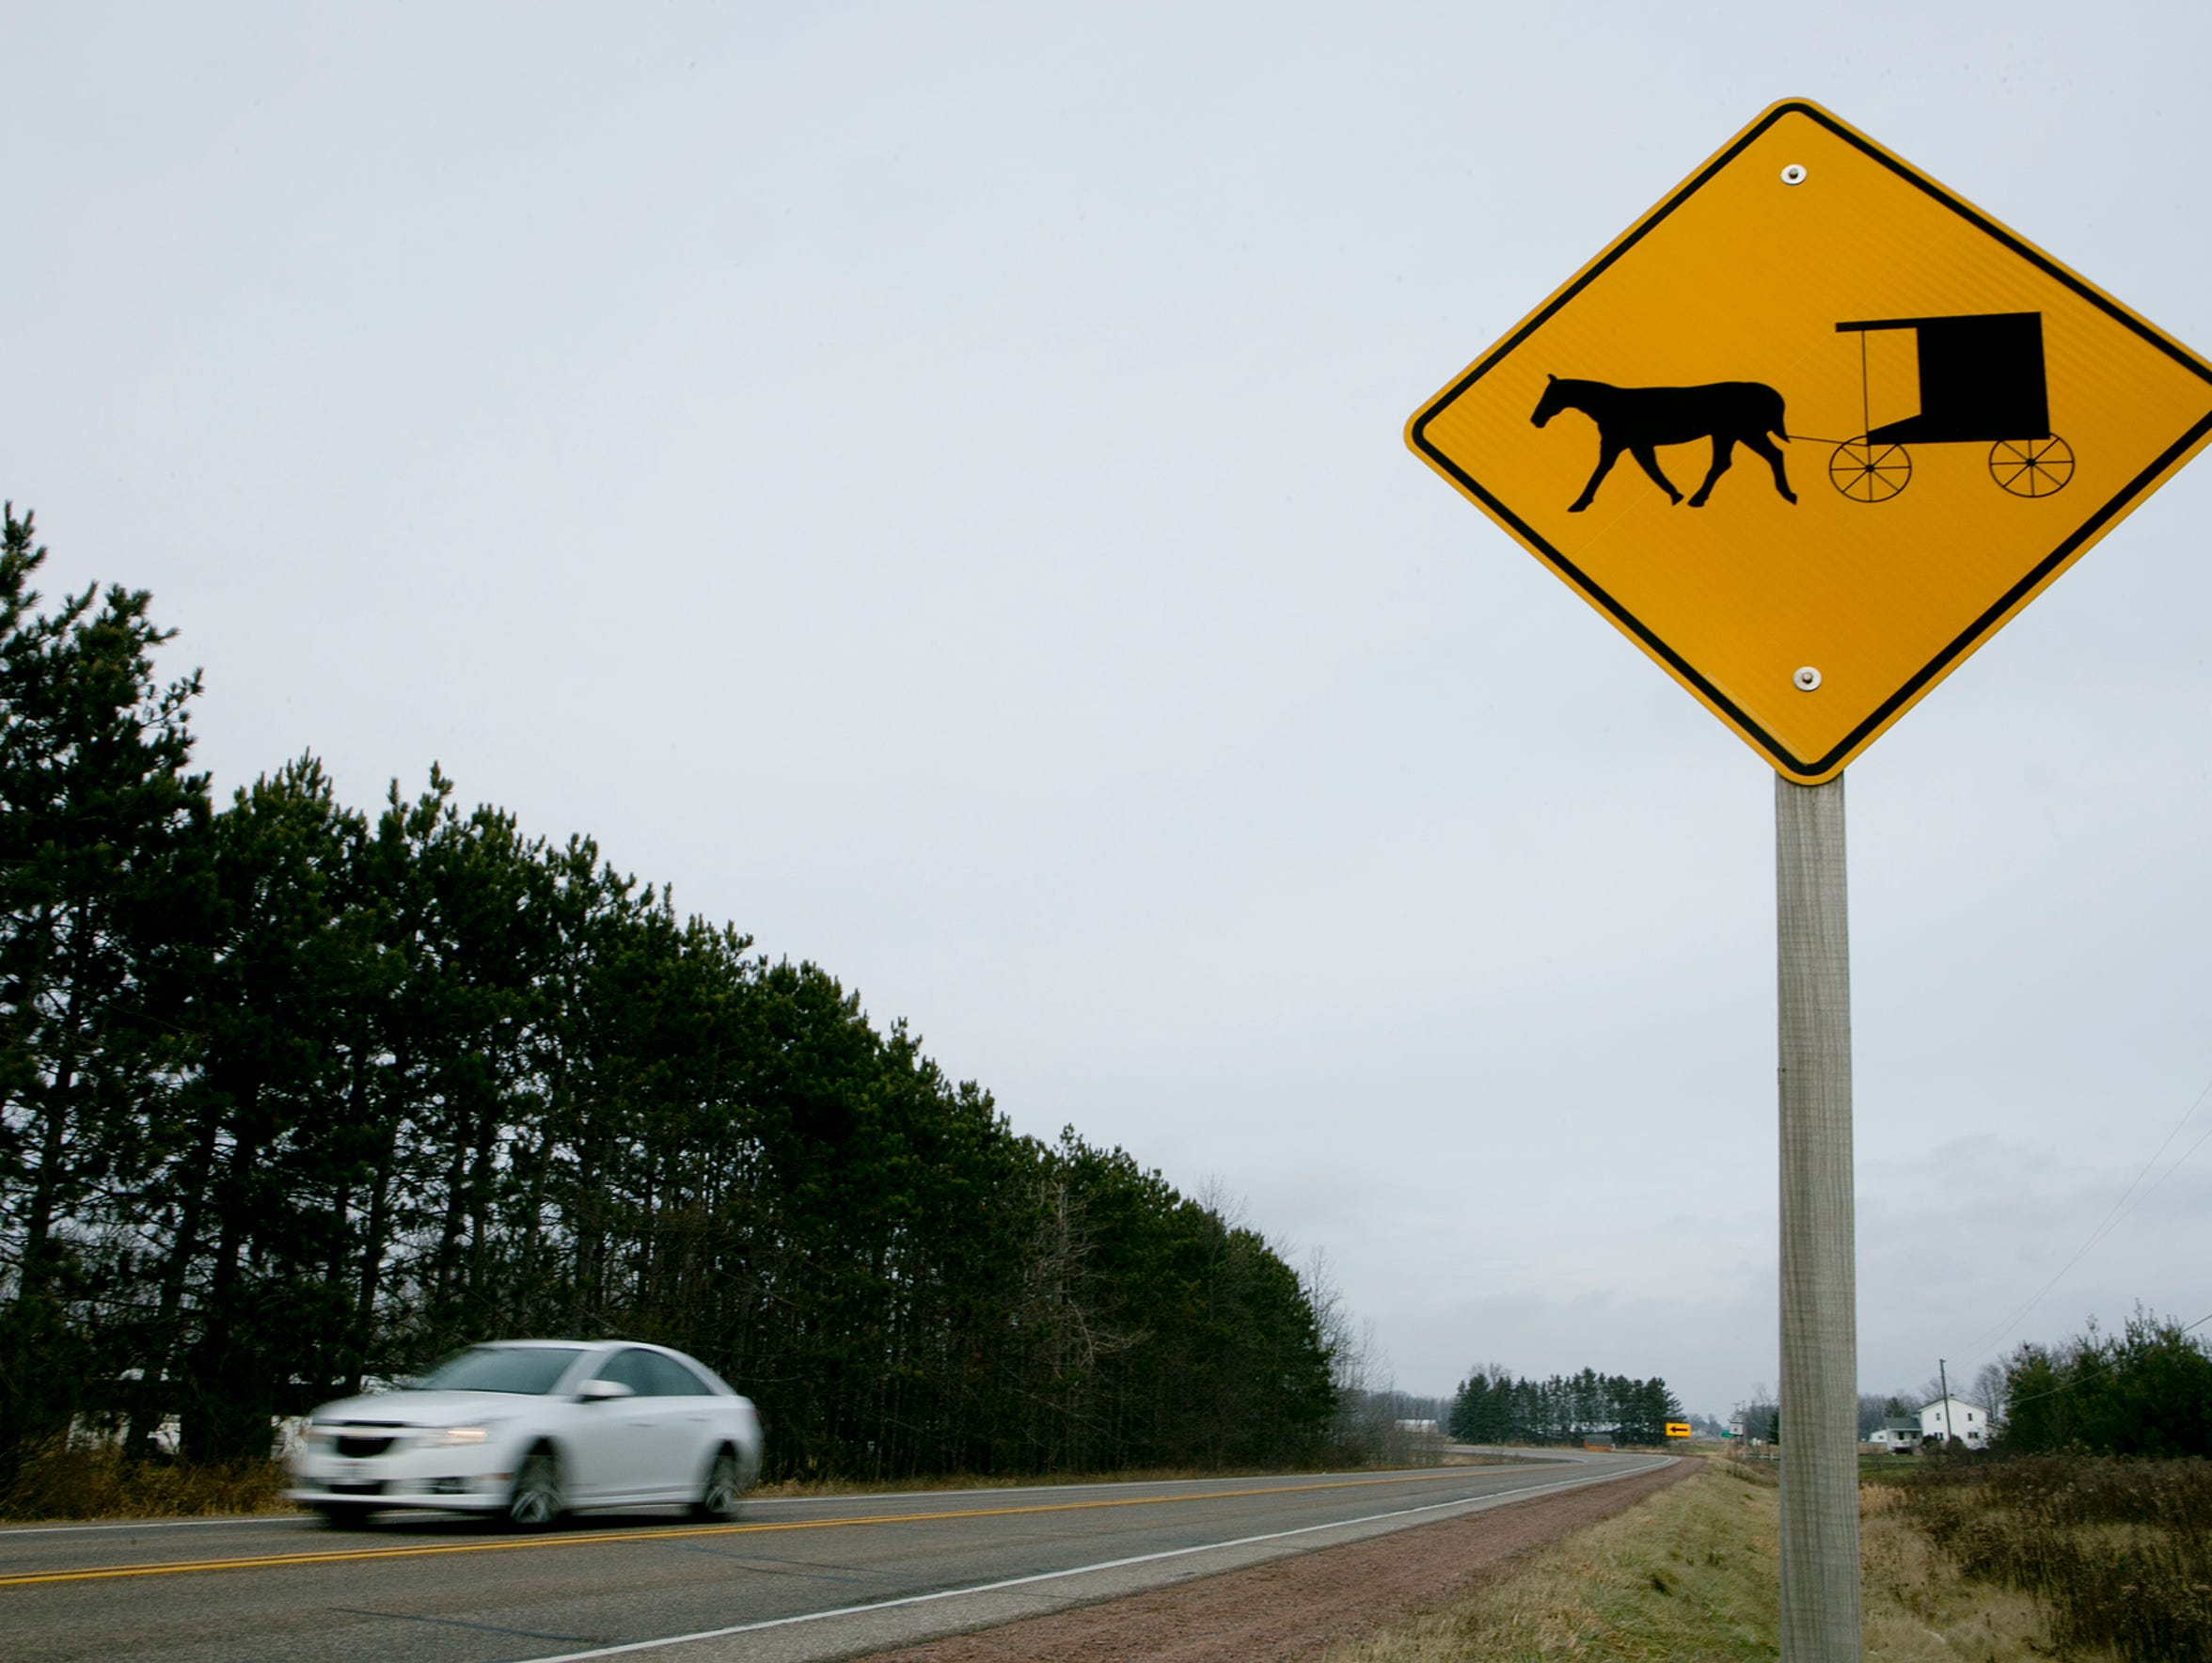 A horse and buggy warning sign is seen on Highway 186